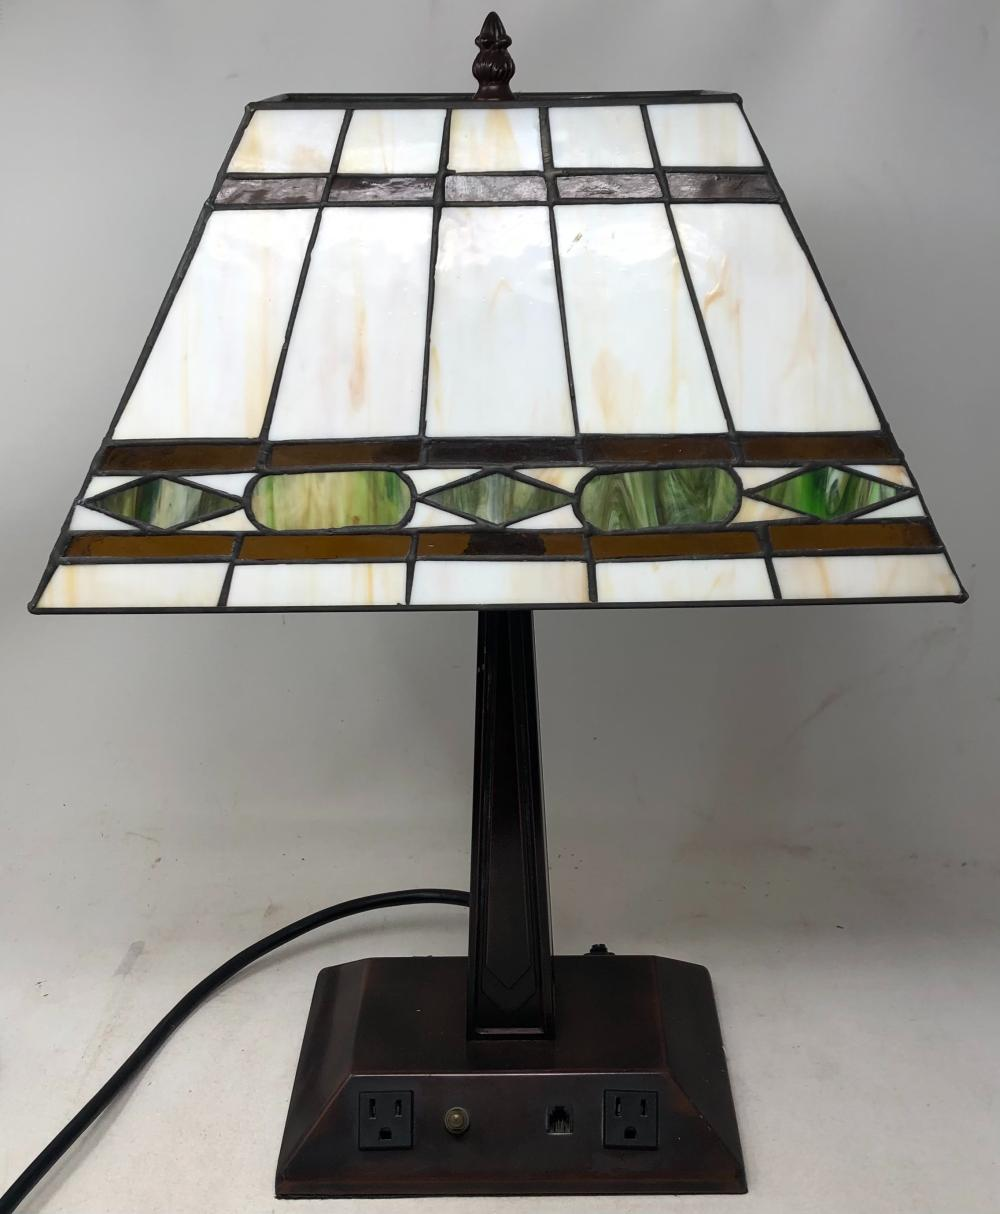 Desk lamp with slag glass shade.